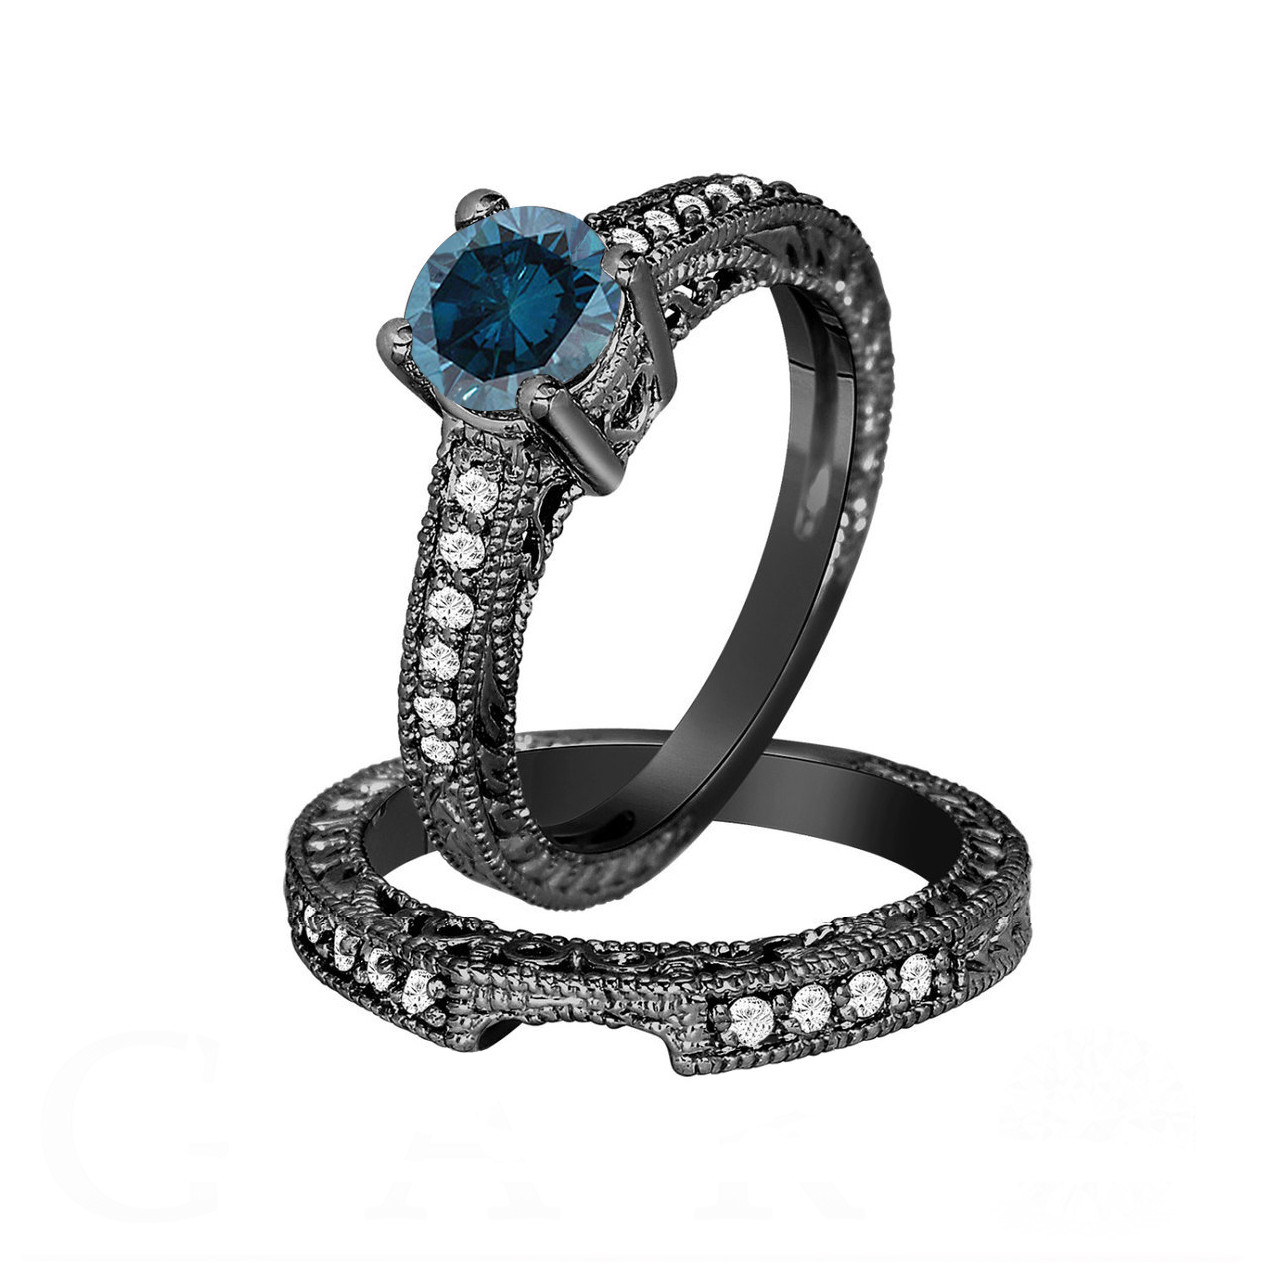 Fancy Blue Diamond Engagement Ring and Wedding Band Sets 14K Black Gold 1 26